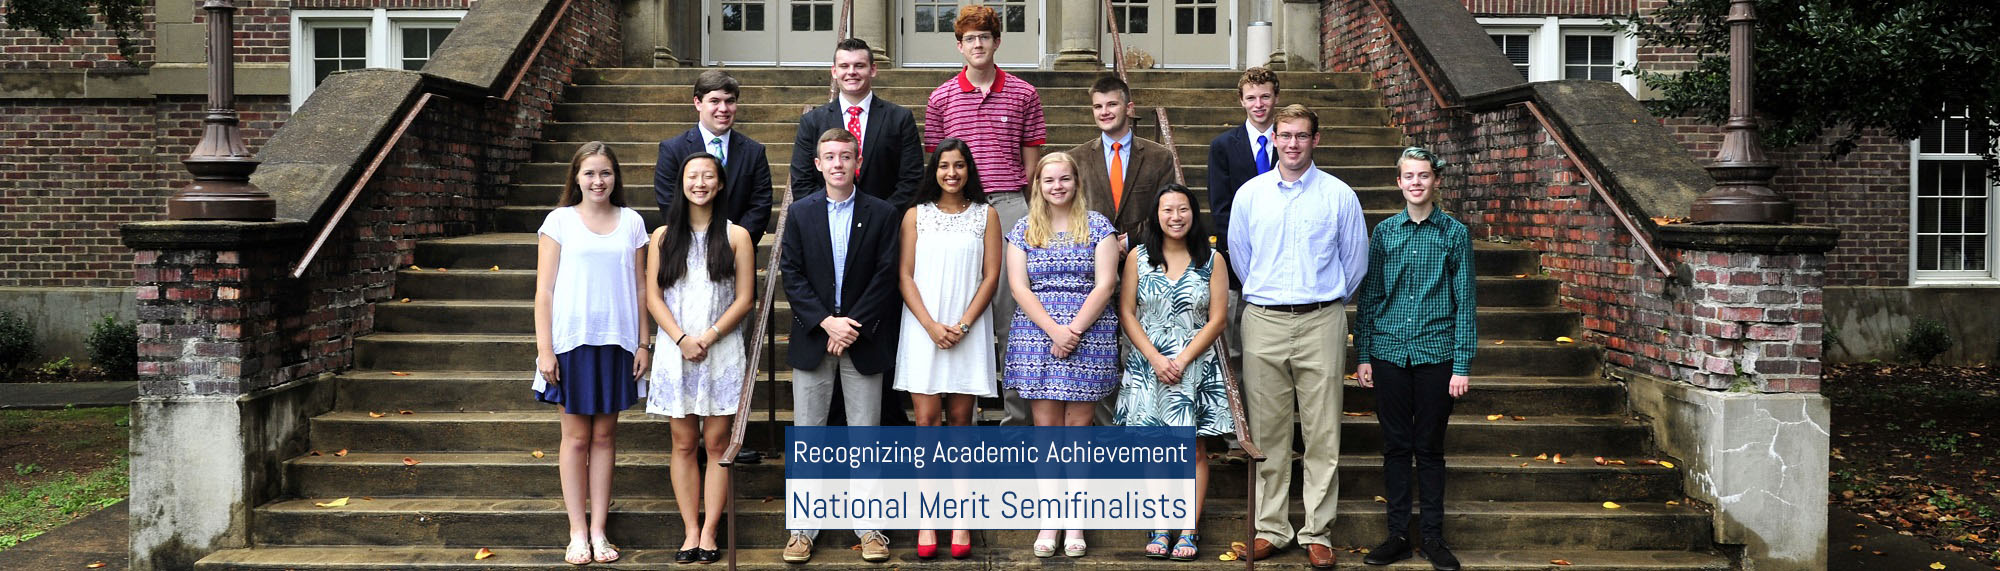 National Honor Merit Semifinalists Banner v3